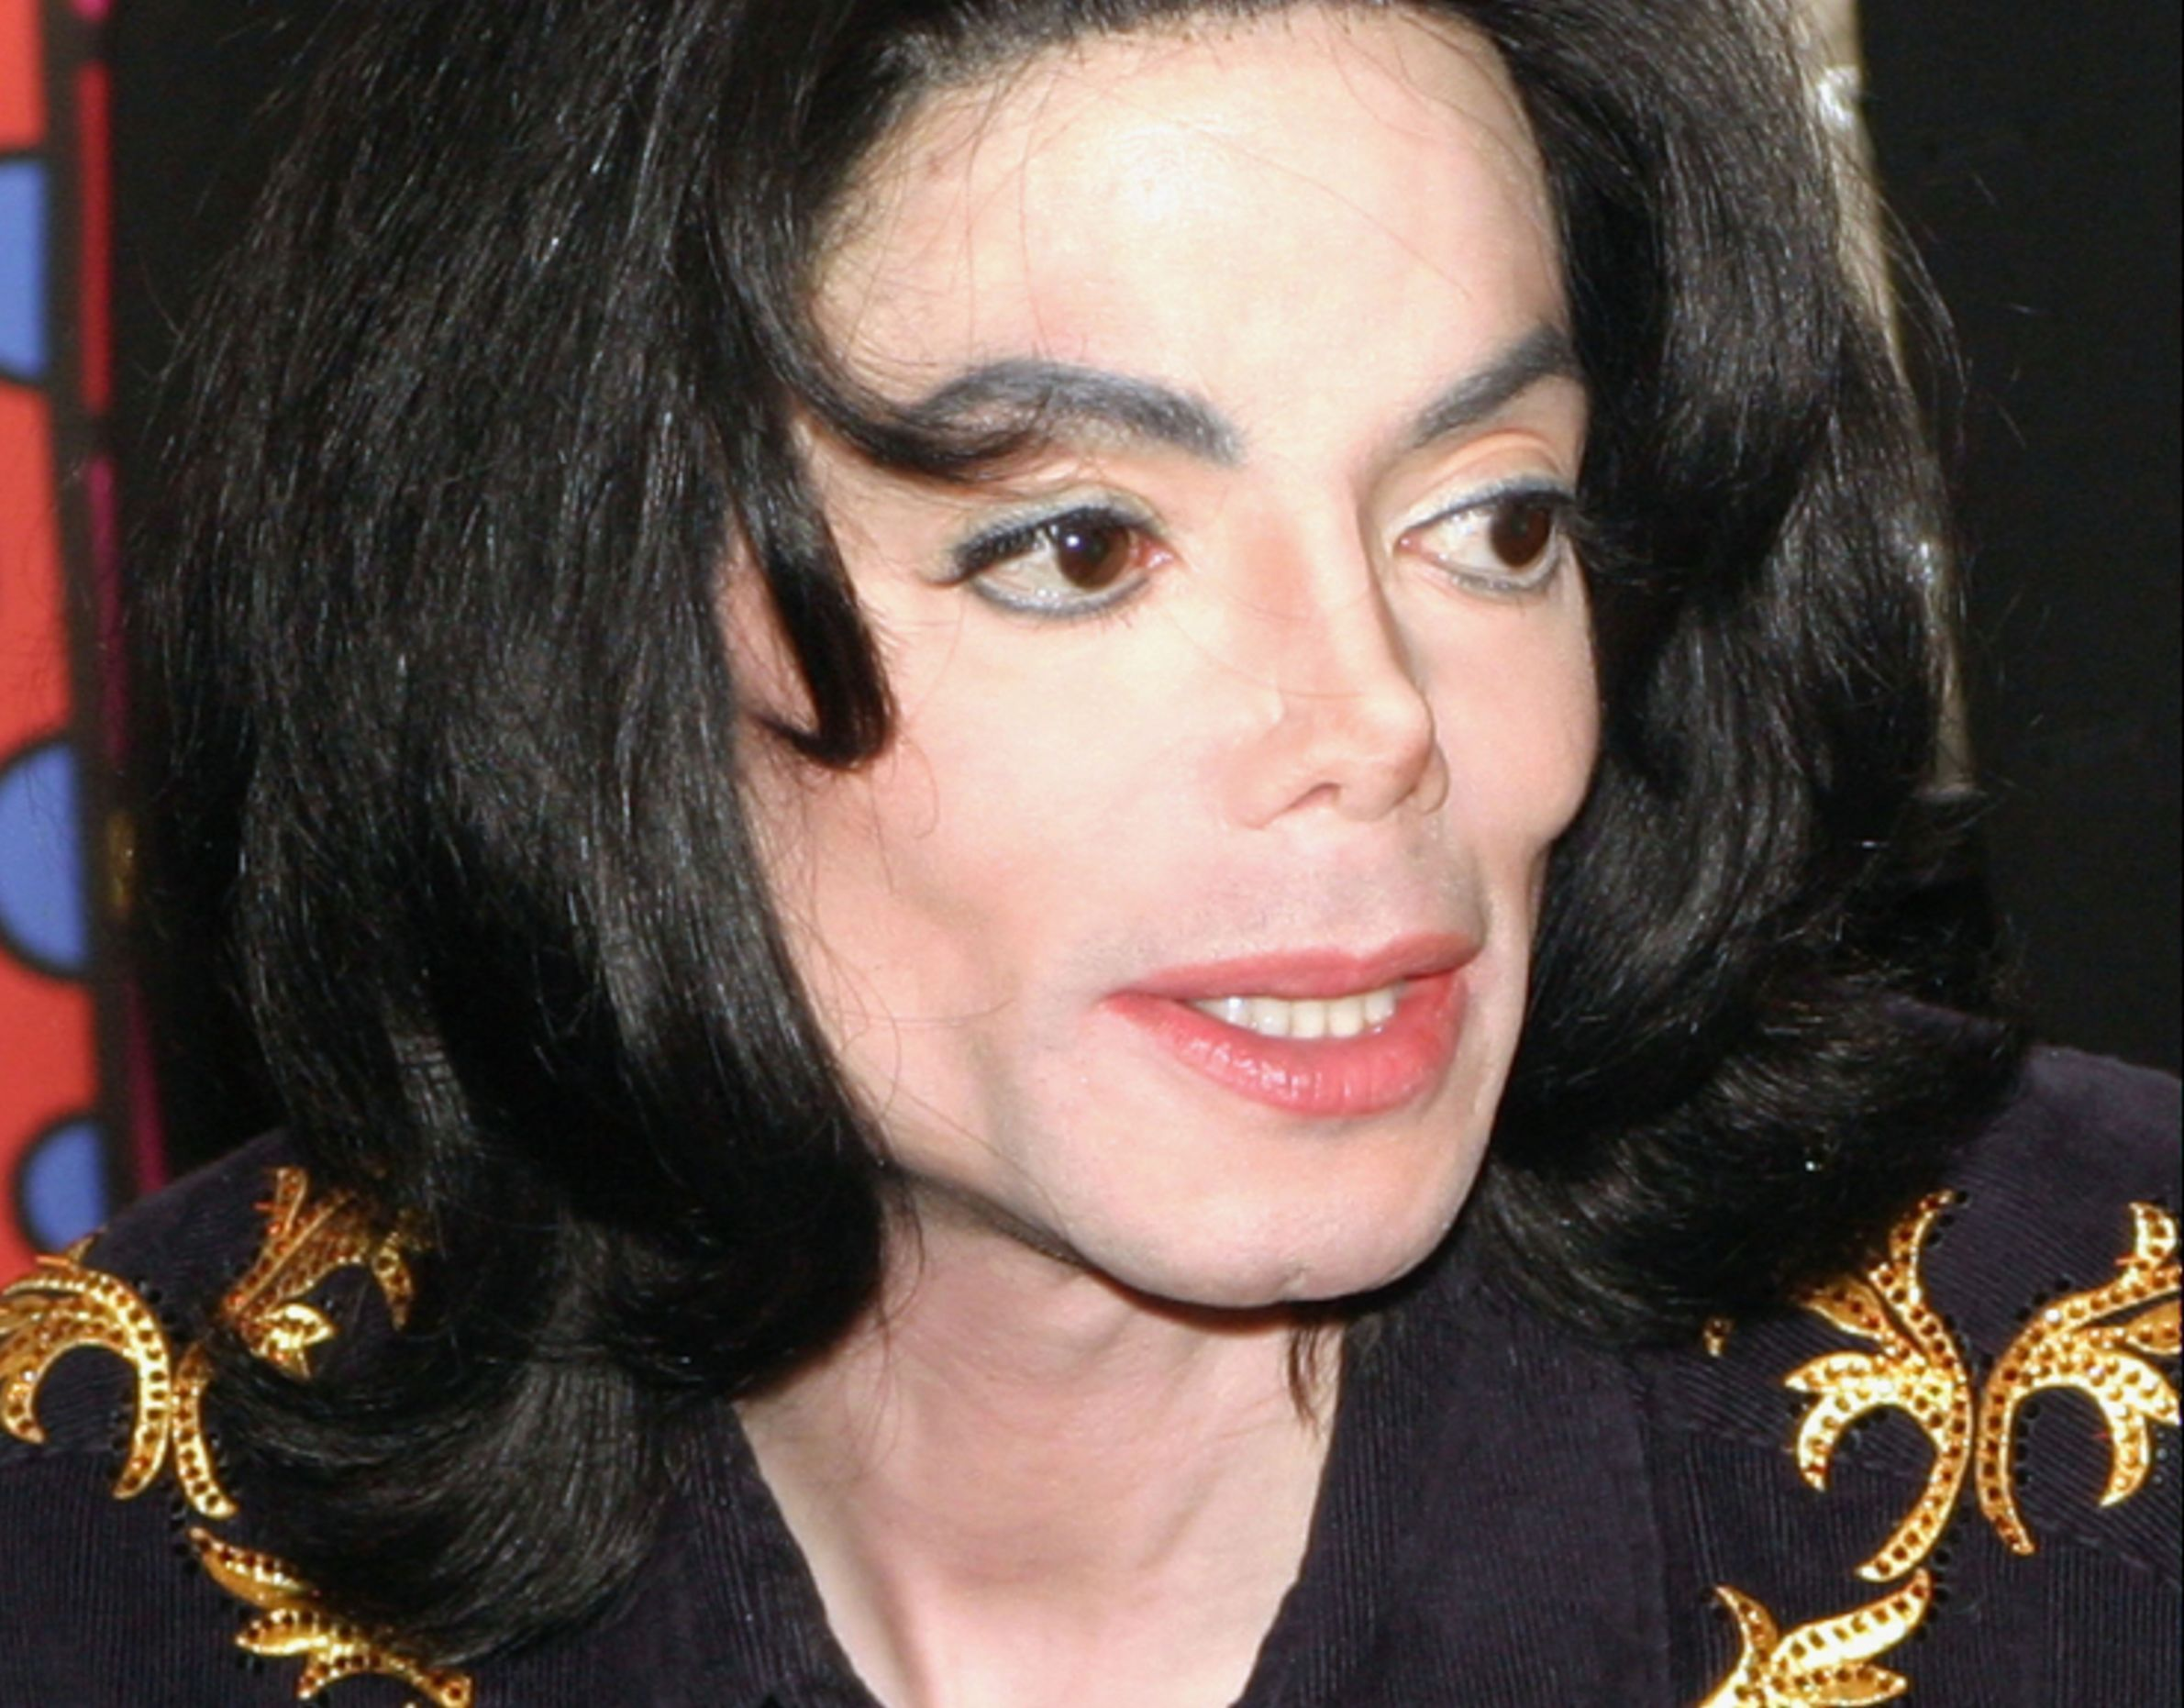 Homeless: Was Michael Jackson Broke And Homeless Before He Died ...